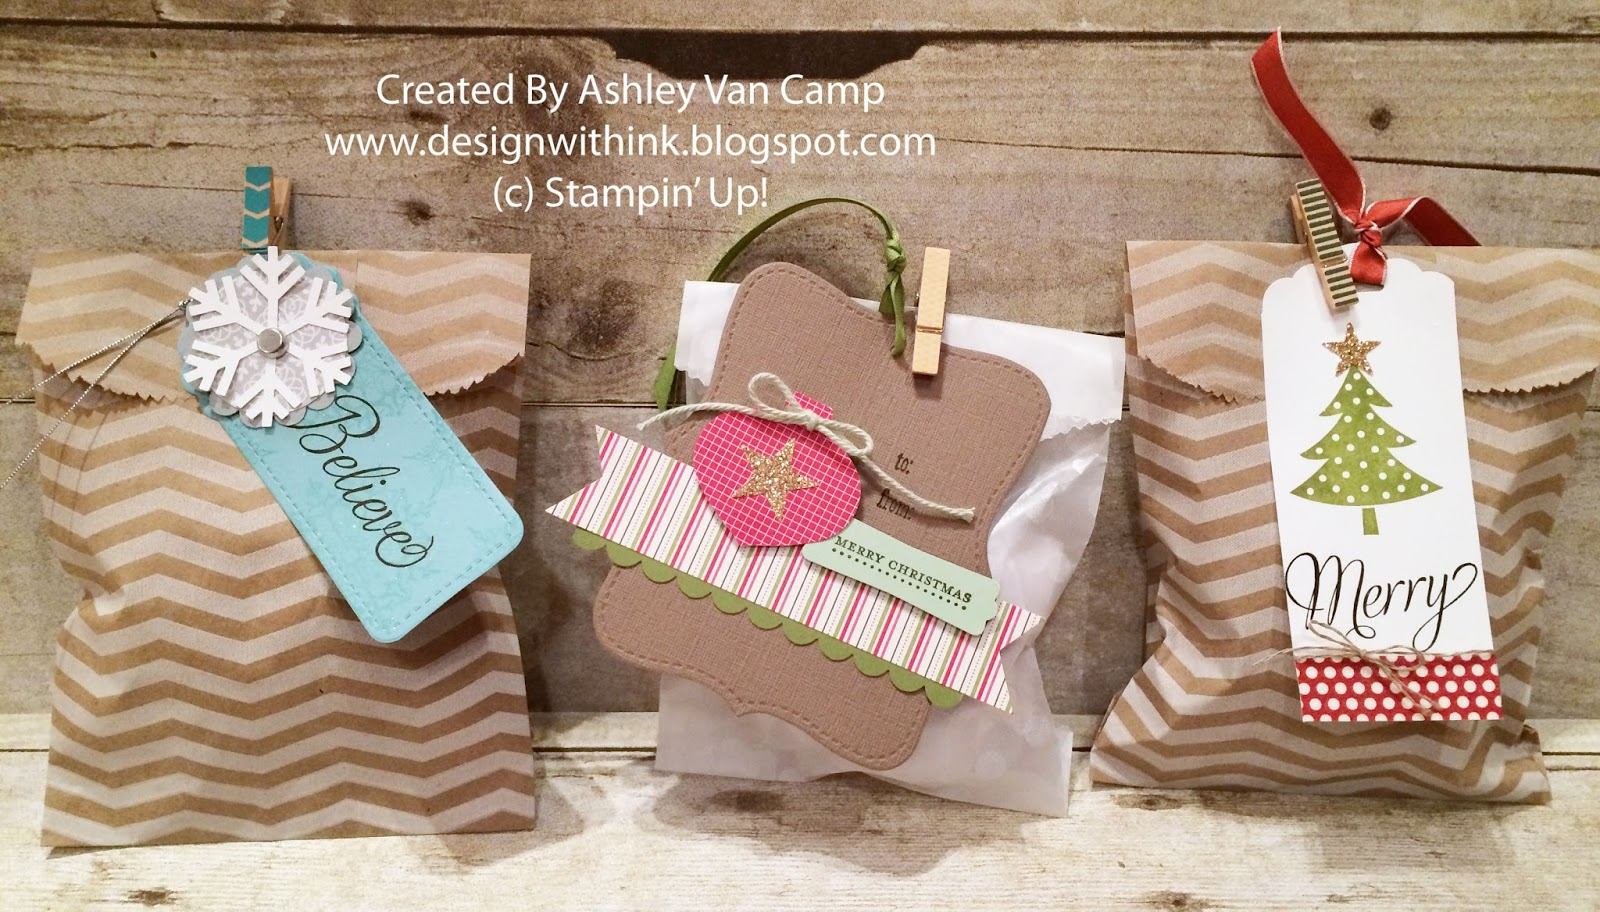 For easy present wrapping just add them